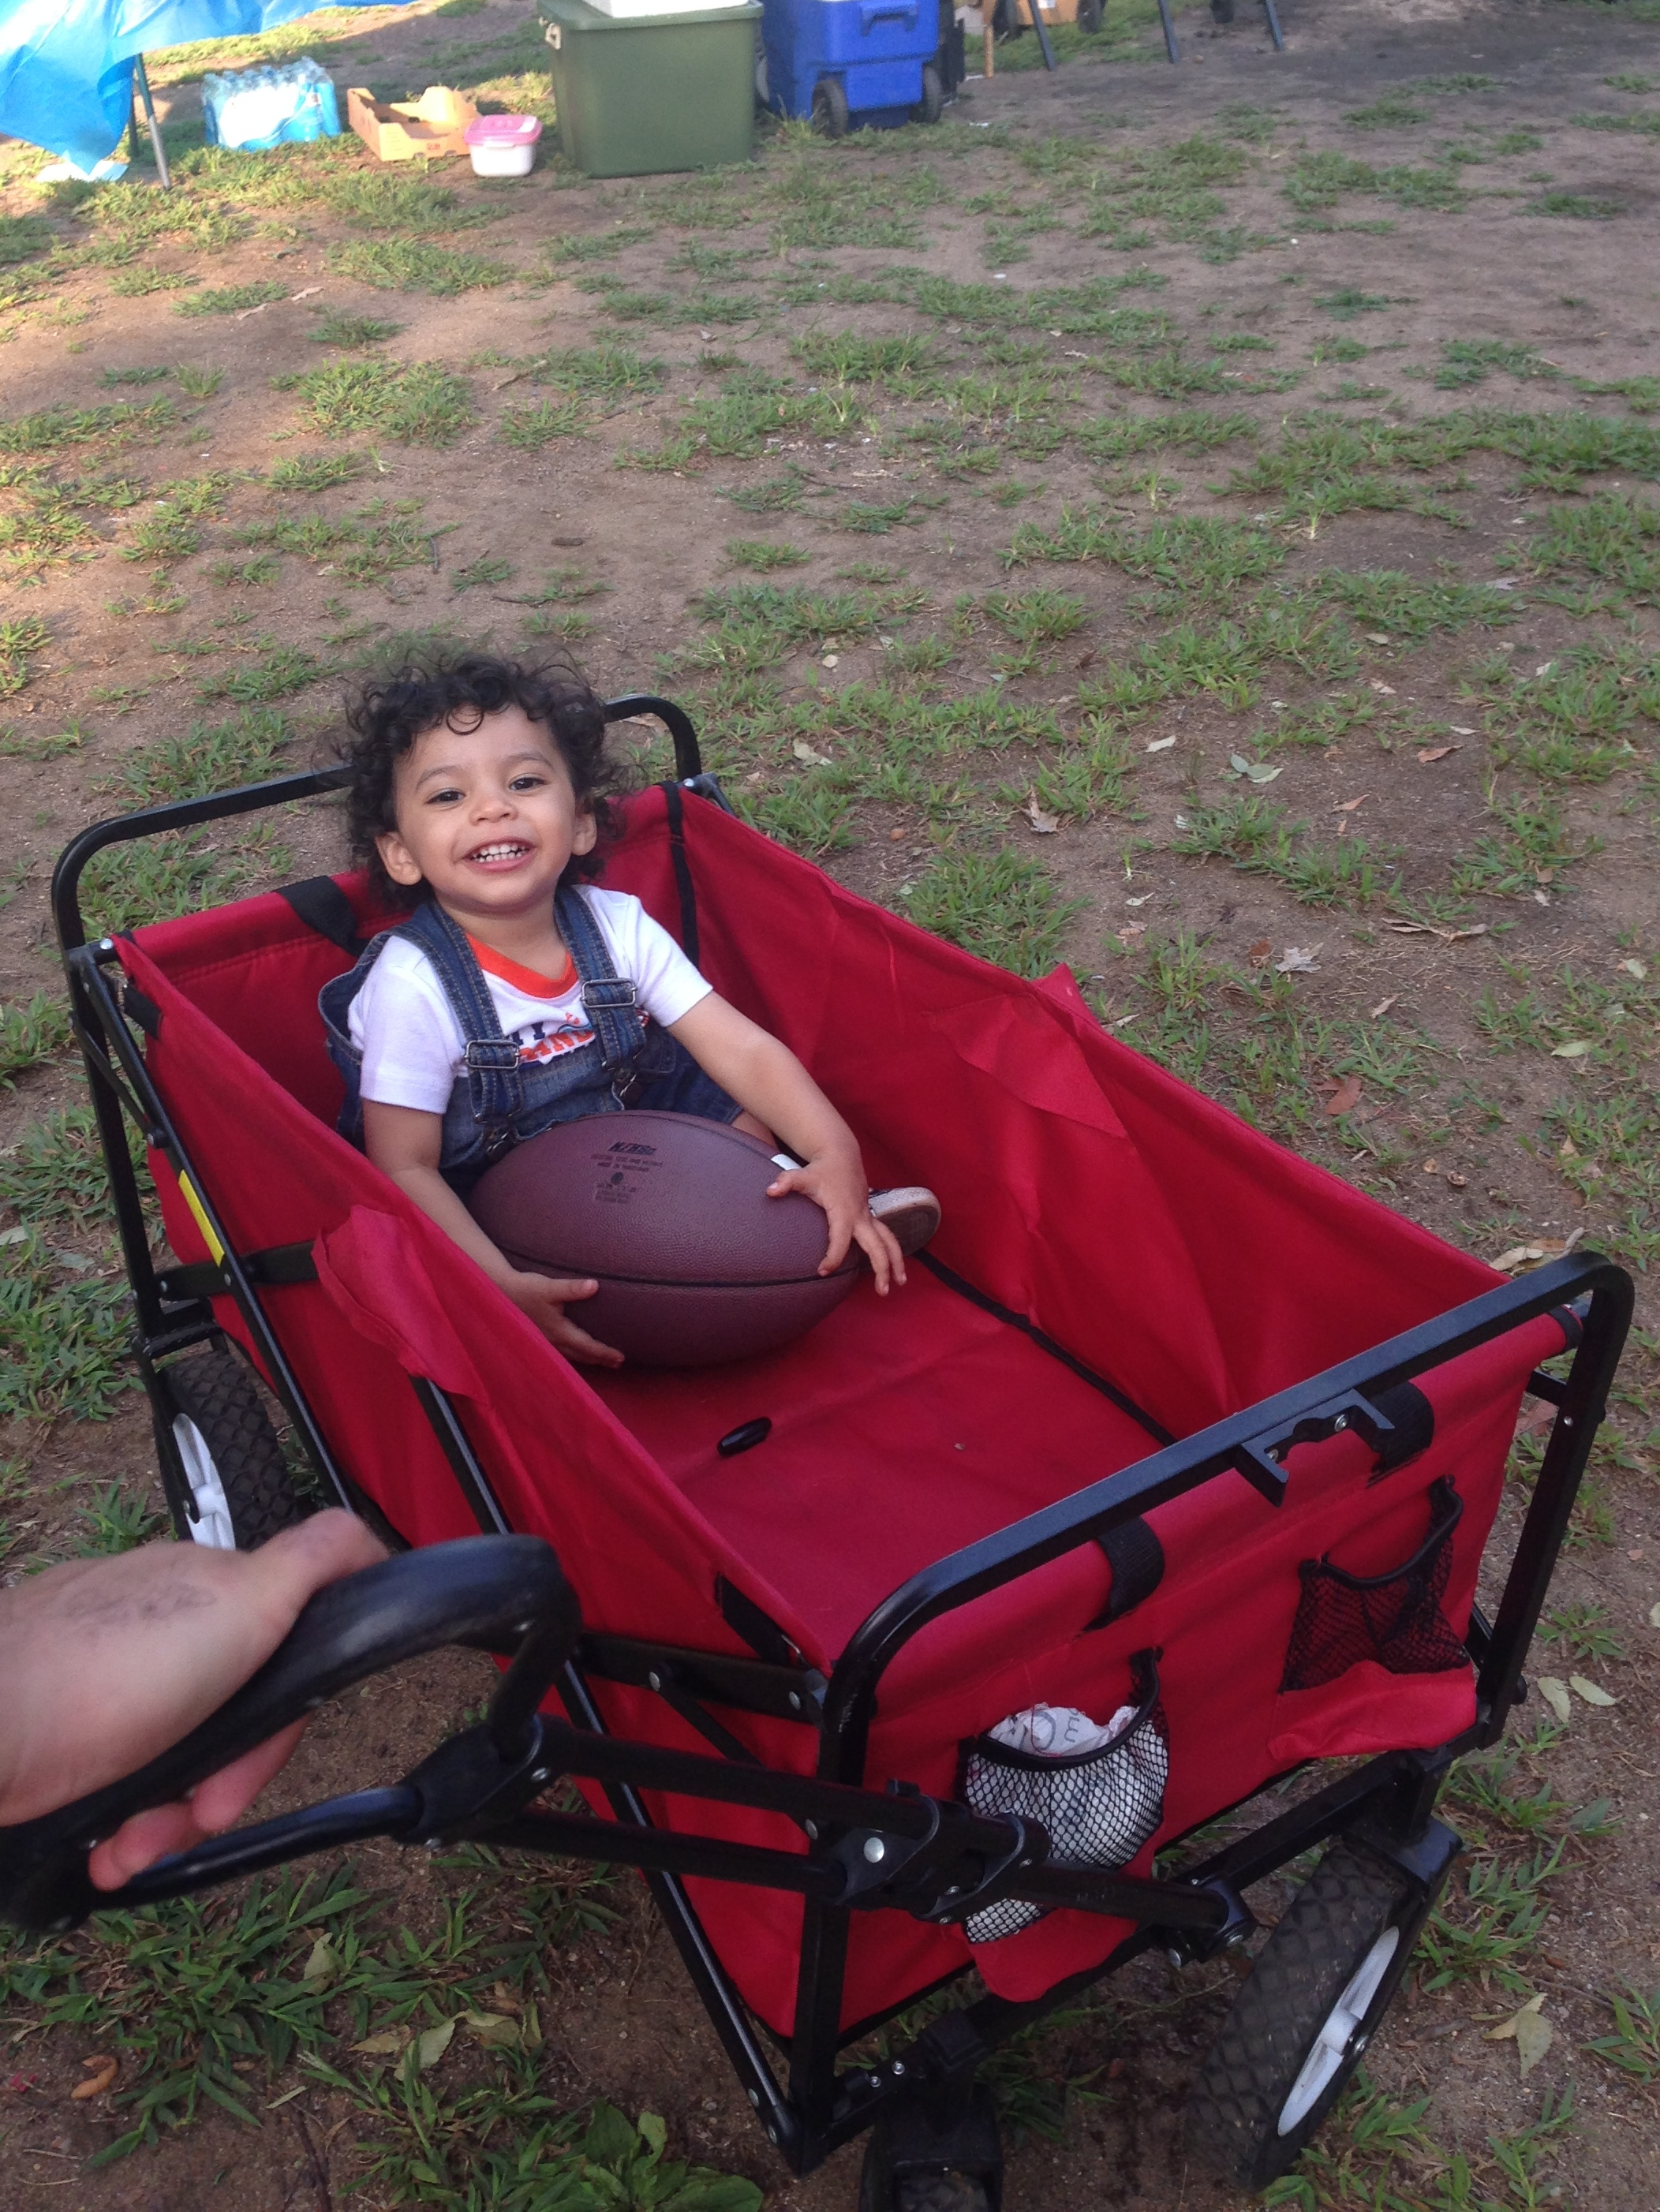 Walking the talk: getting my son evaluated